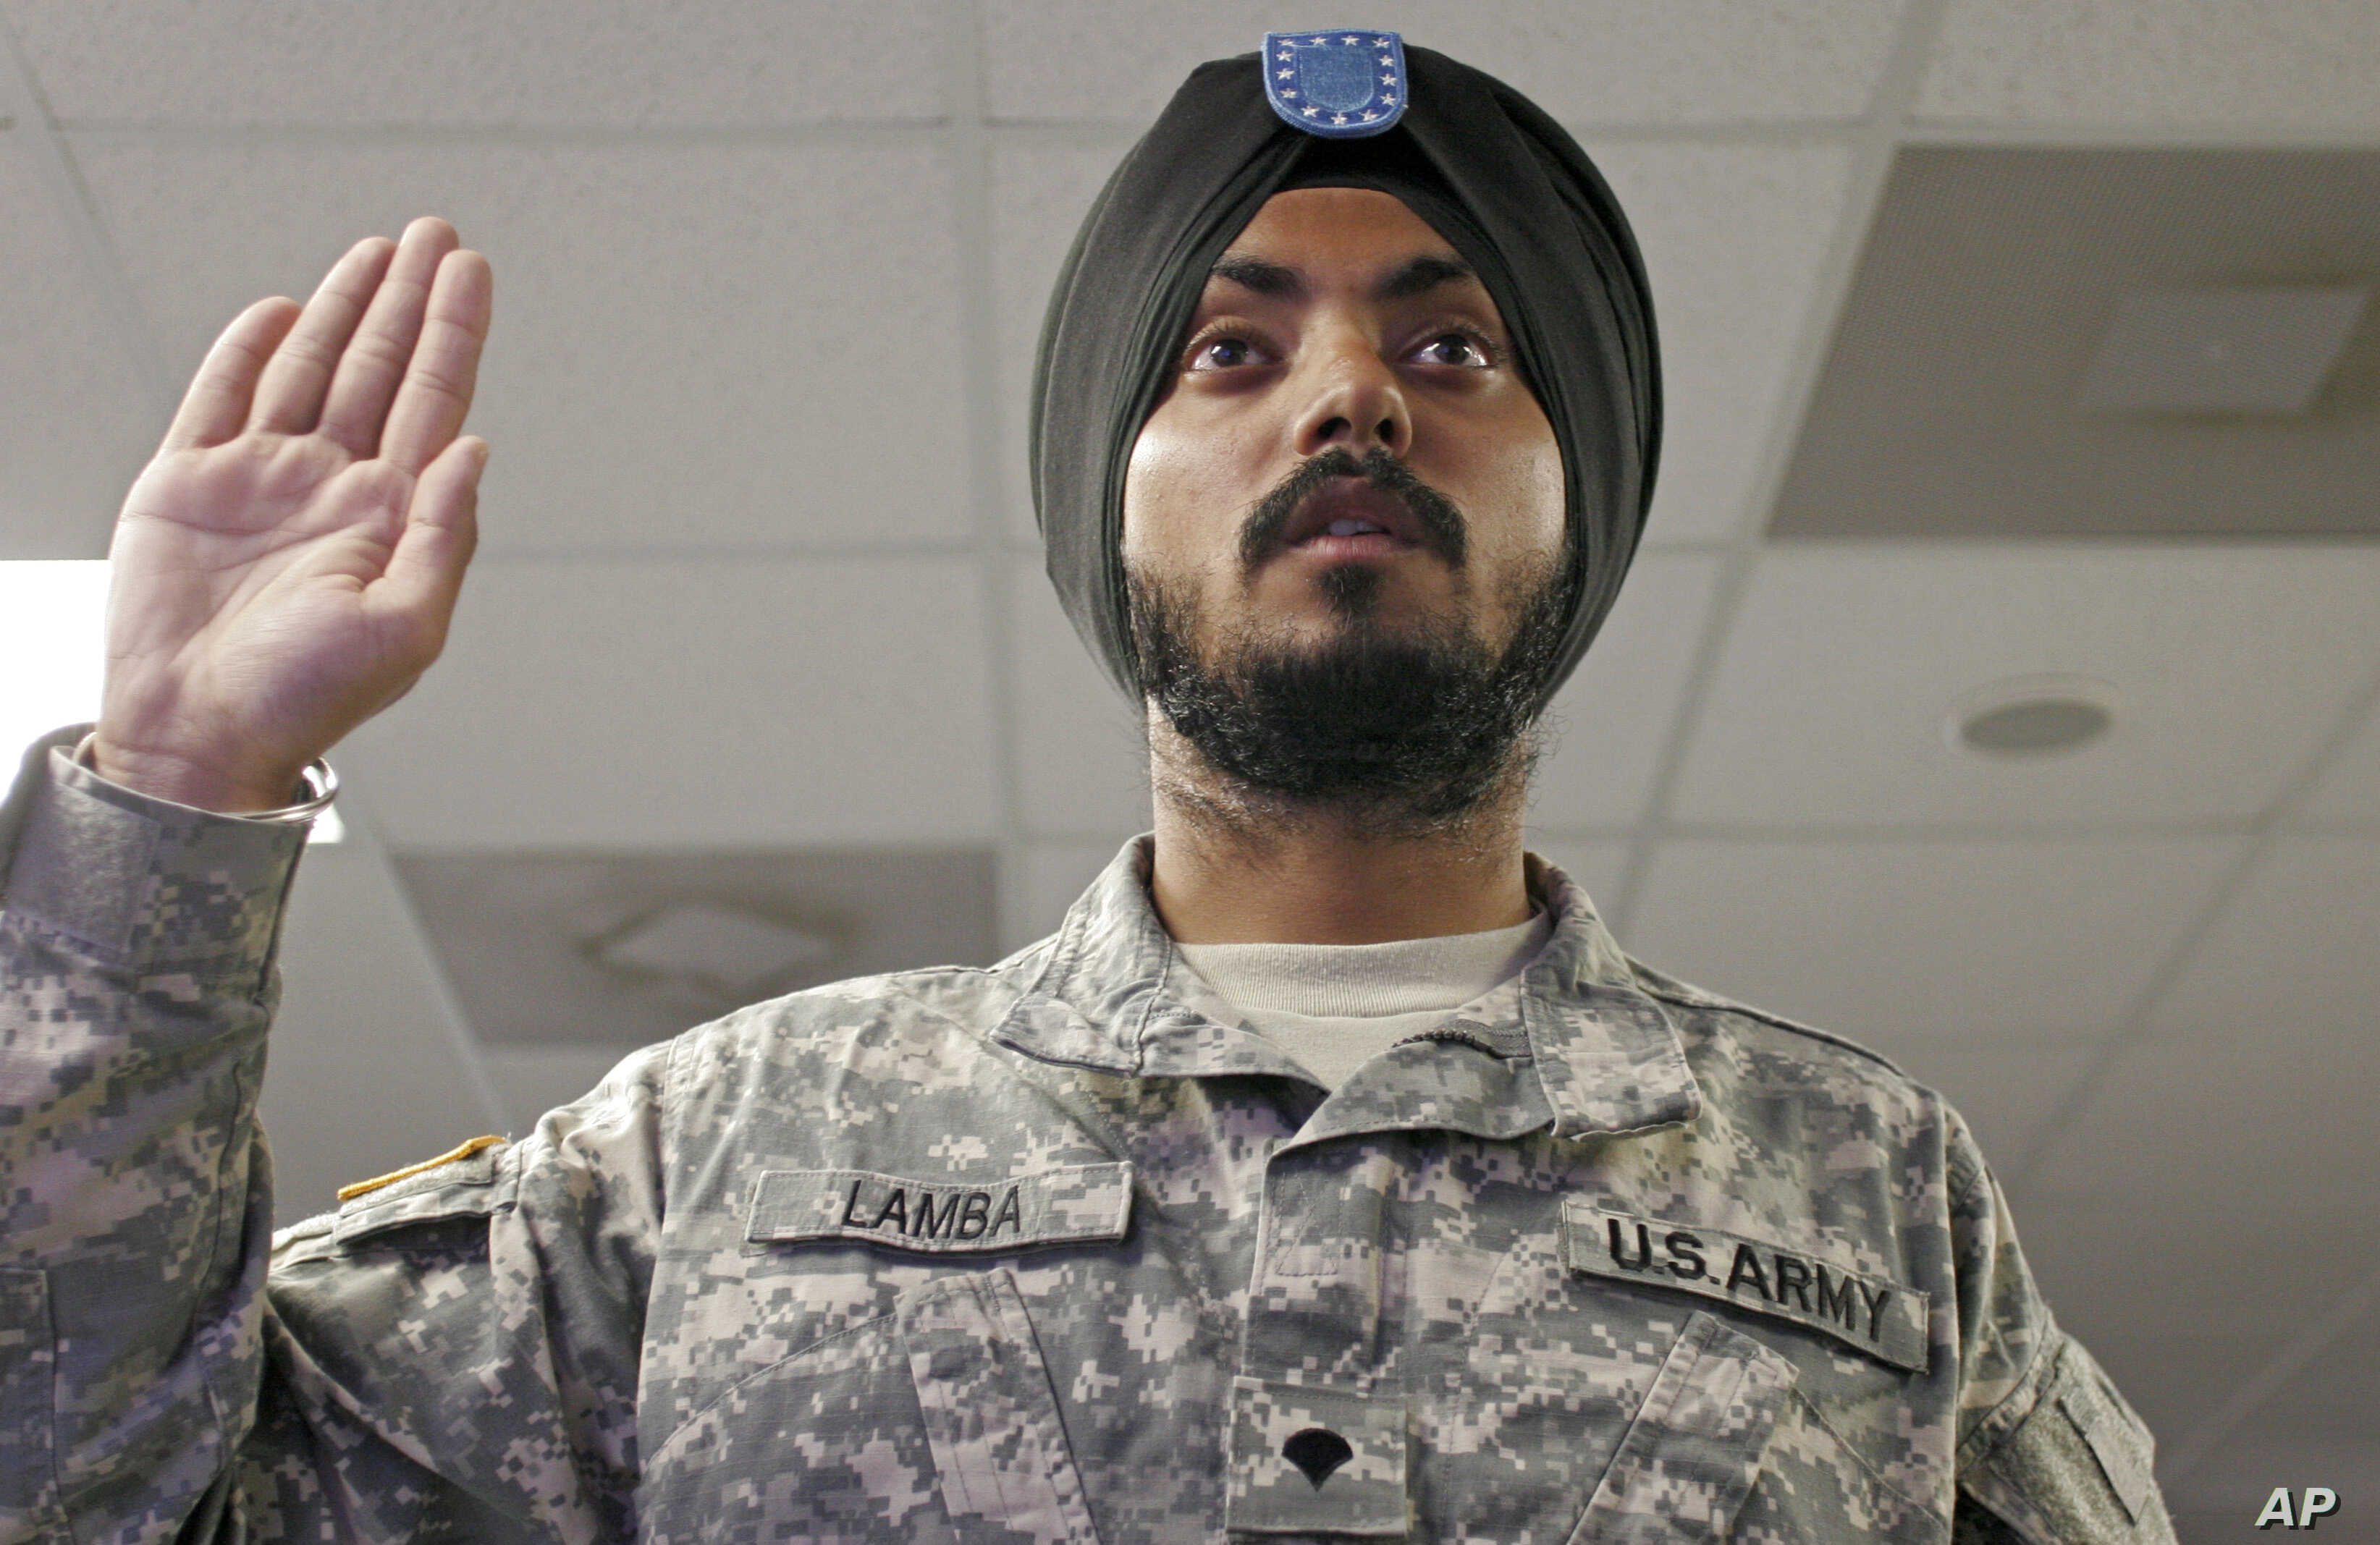 FILE - U.S. Army Spc. Simran Lamba takes the oath of citizenship to become a naturalized citizen before his graduation from basic training at Fort Jackson, South Carolina, Nov. 10, 2010.